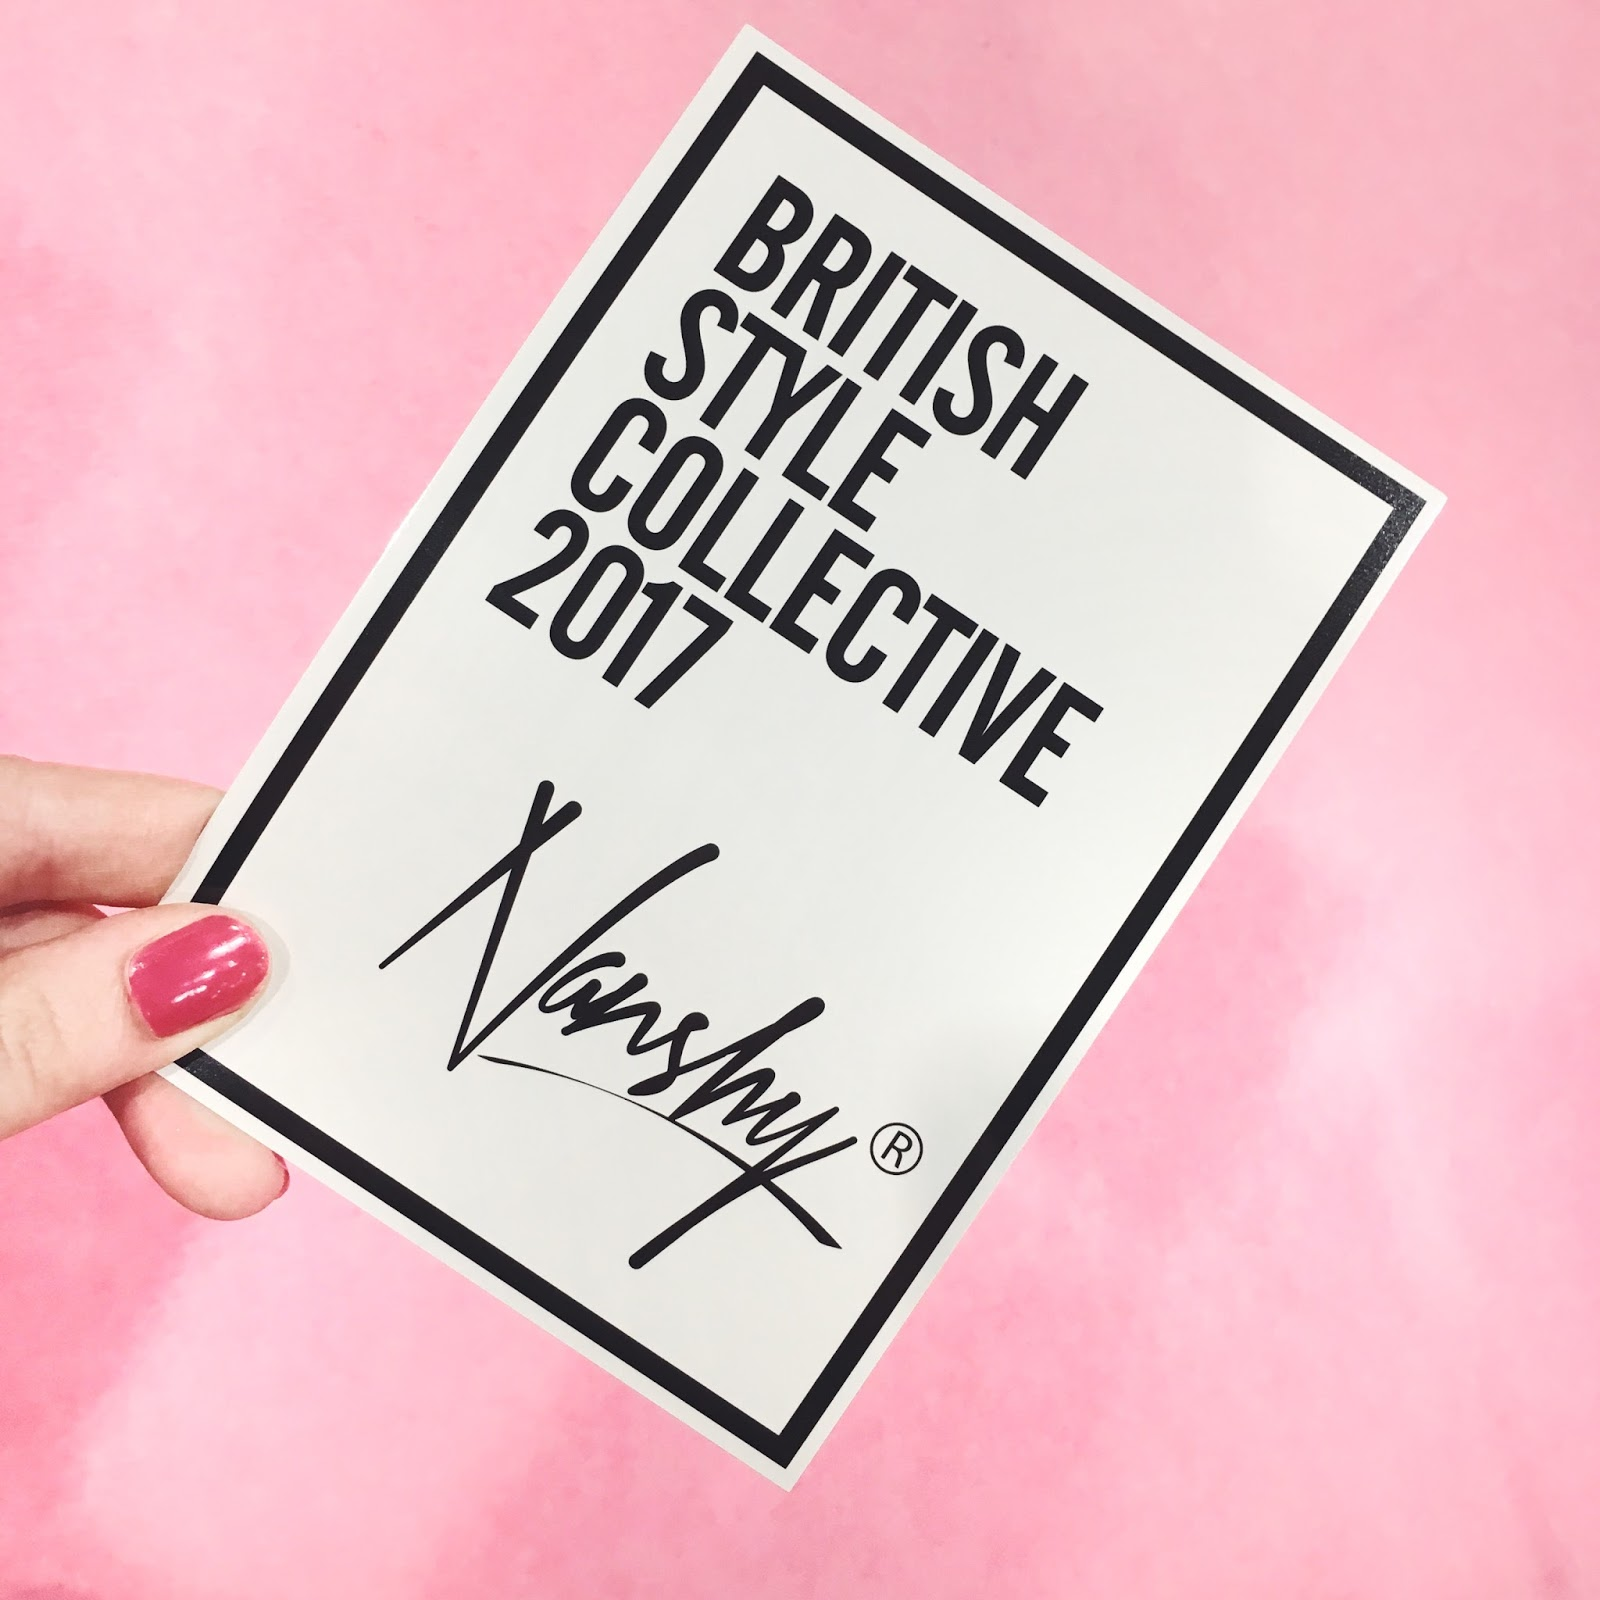 british style collective 2017 in liverpool